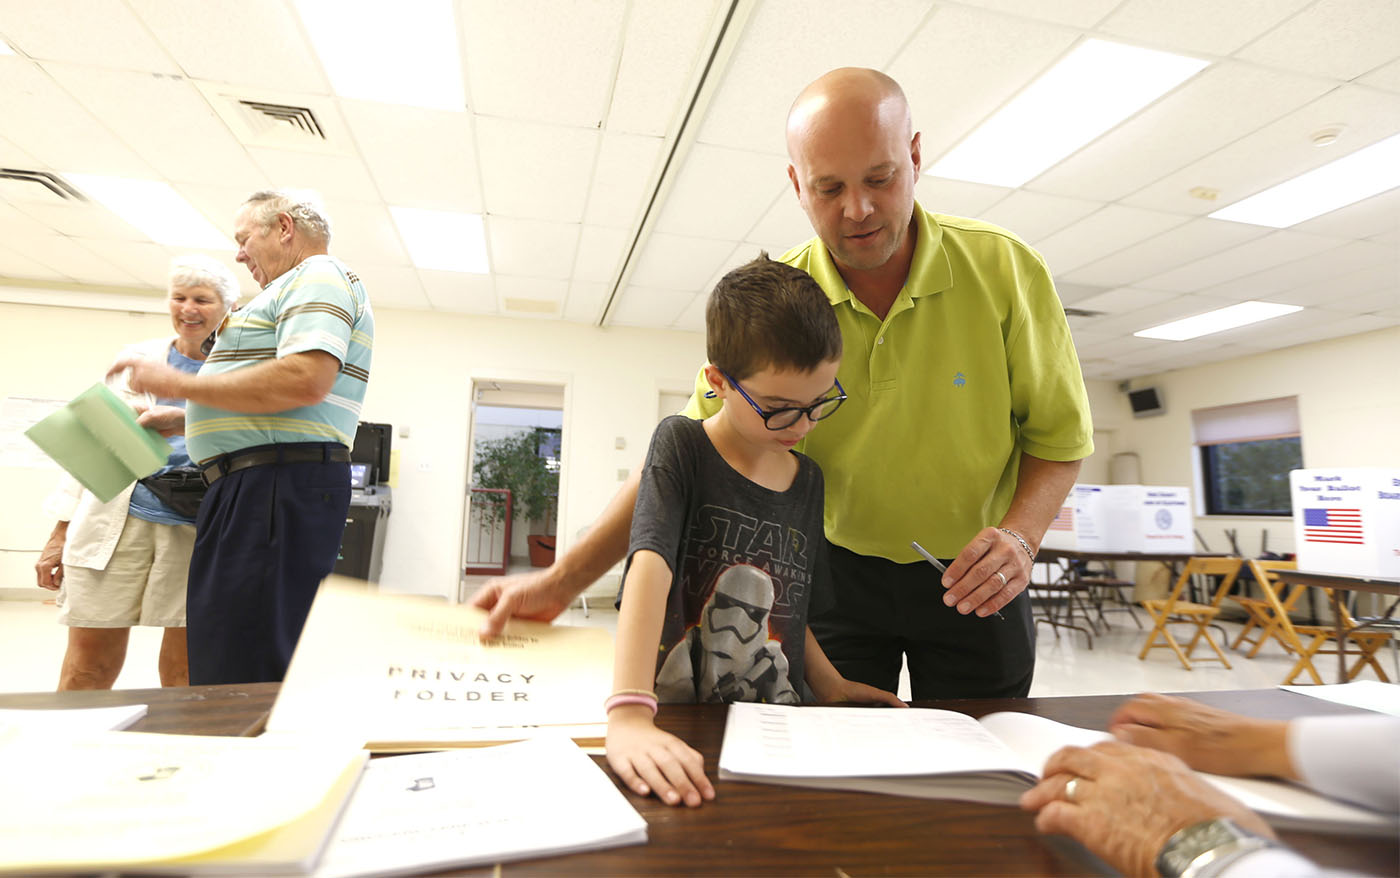 Pictures, Scott Kroll of Orchard Park shows his son Max, 8, how the voting process works at his neighborhood polling place at Nativity of Our Lord school in Orchard Park on Tuesday, Sept. 13, 2016. (Robert Kirkham/Buffalo News)